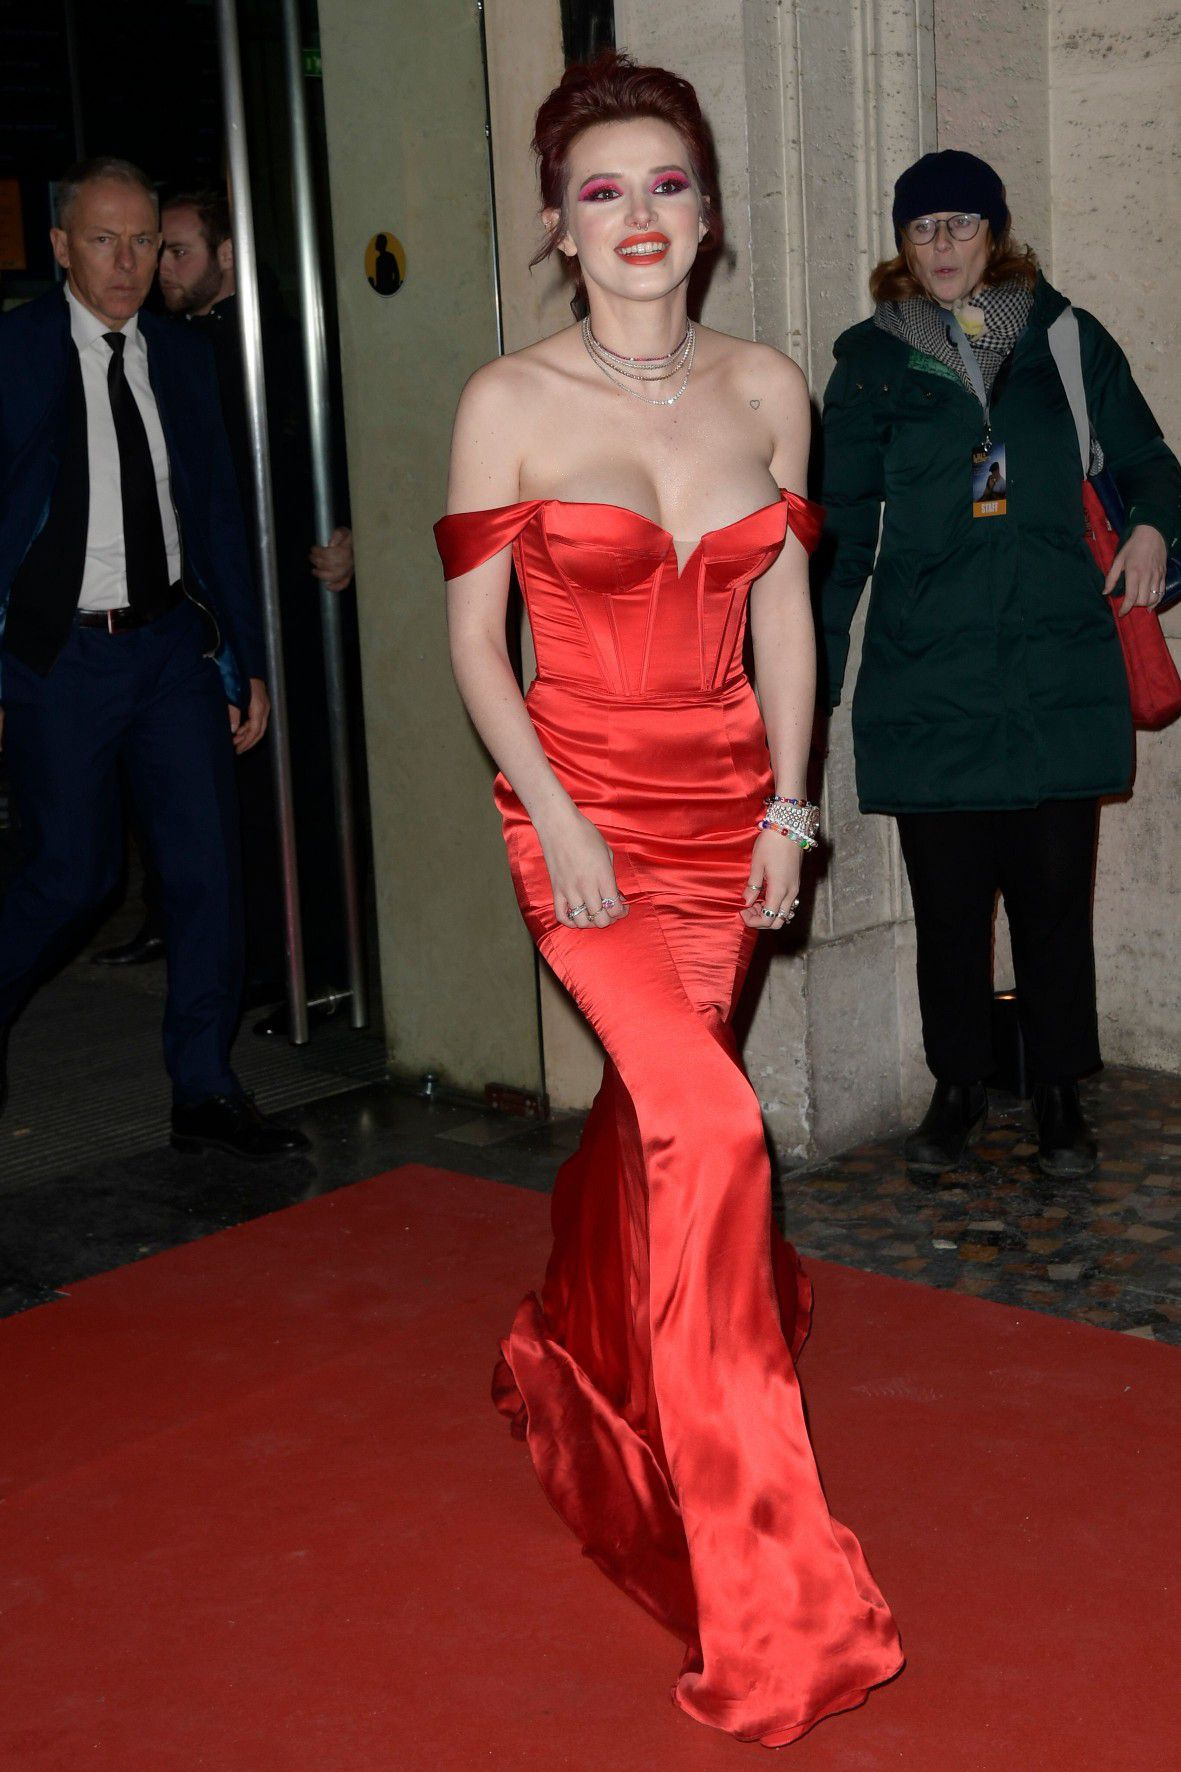 bella-thorne-deep-cleavage-at-midnight-run-premiere-in-rome-2342